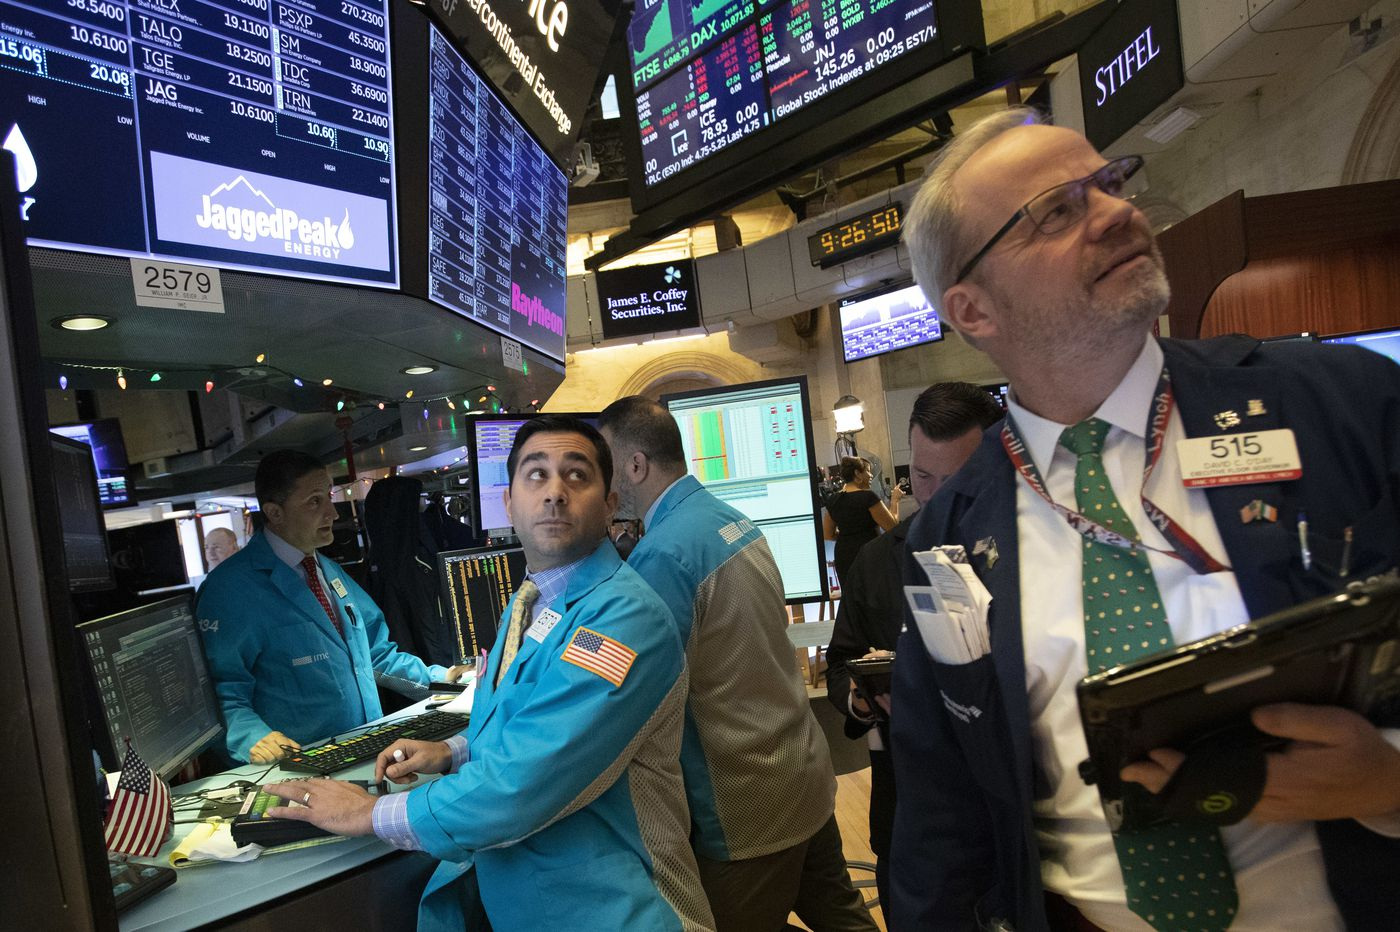 Up, down, back again: US stocks go on another dizzying ride